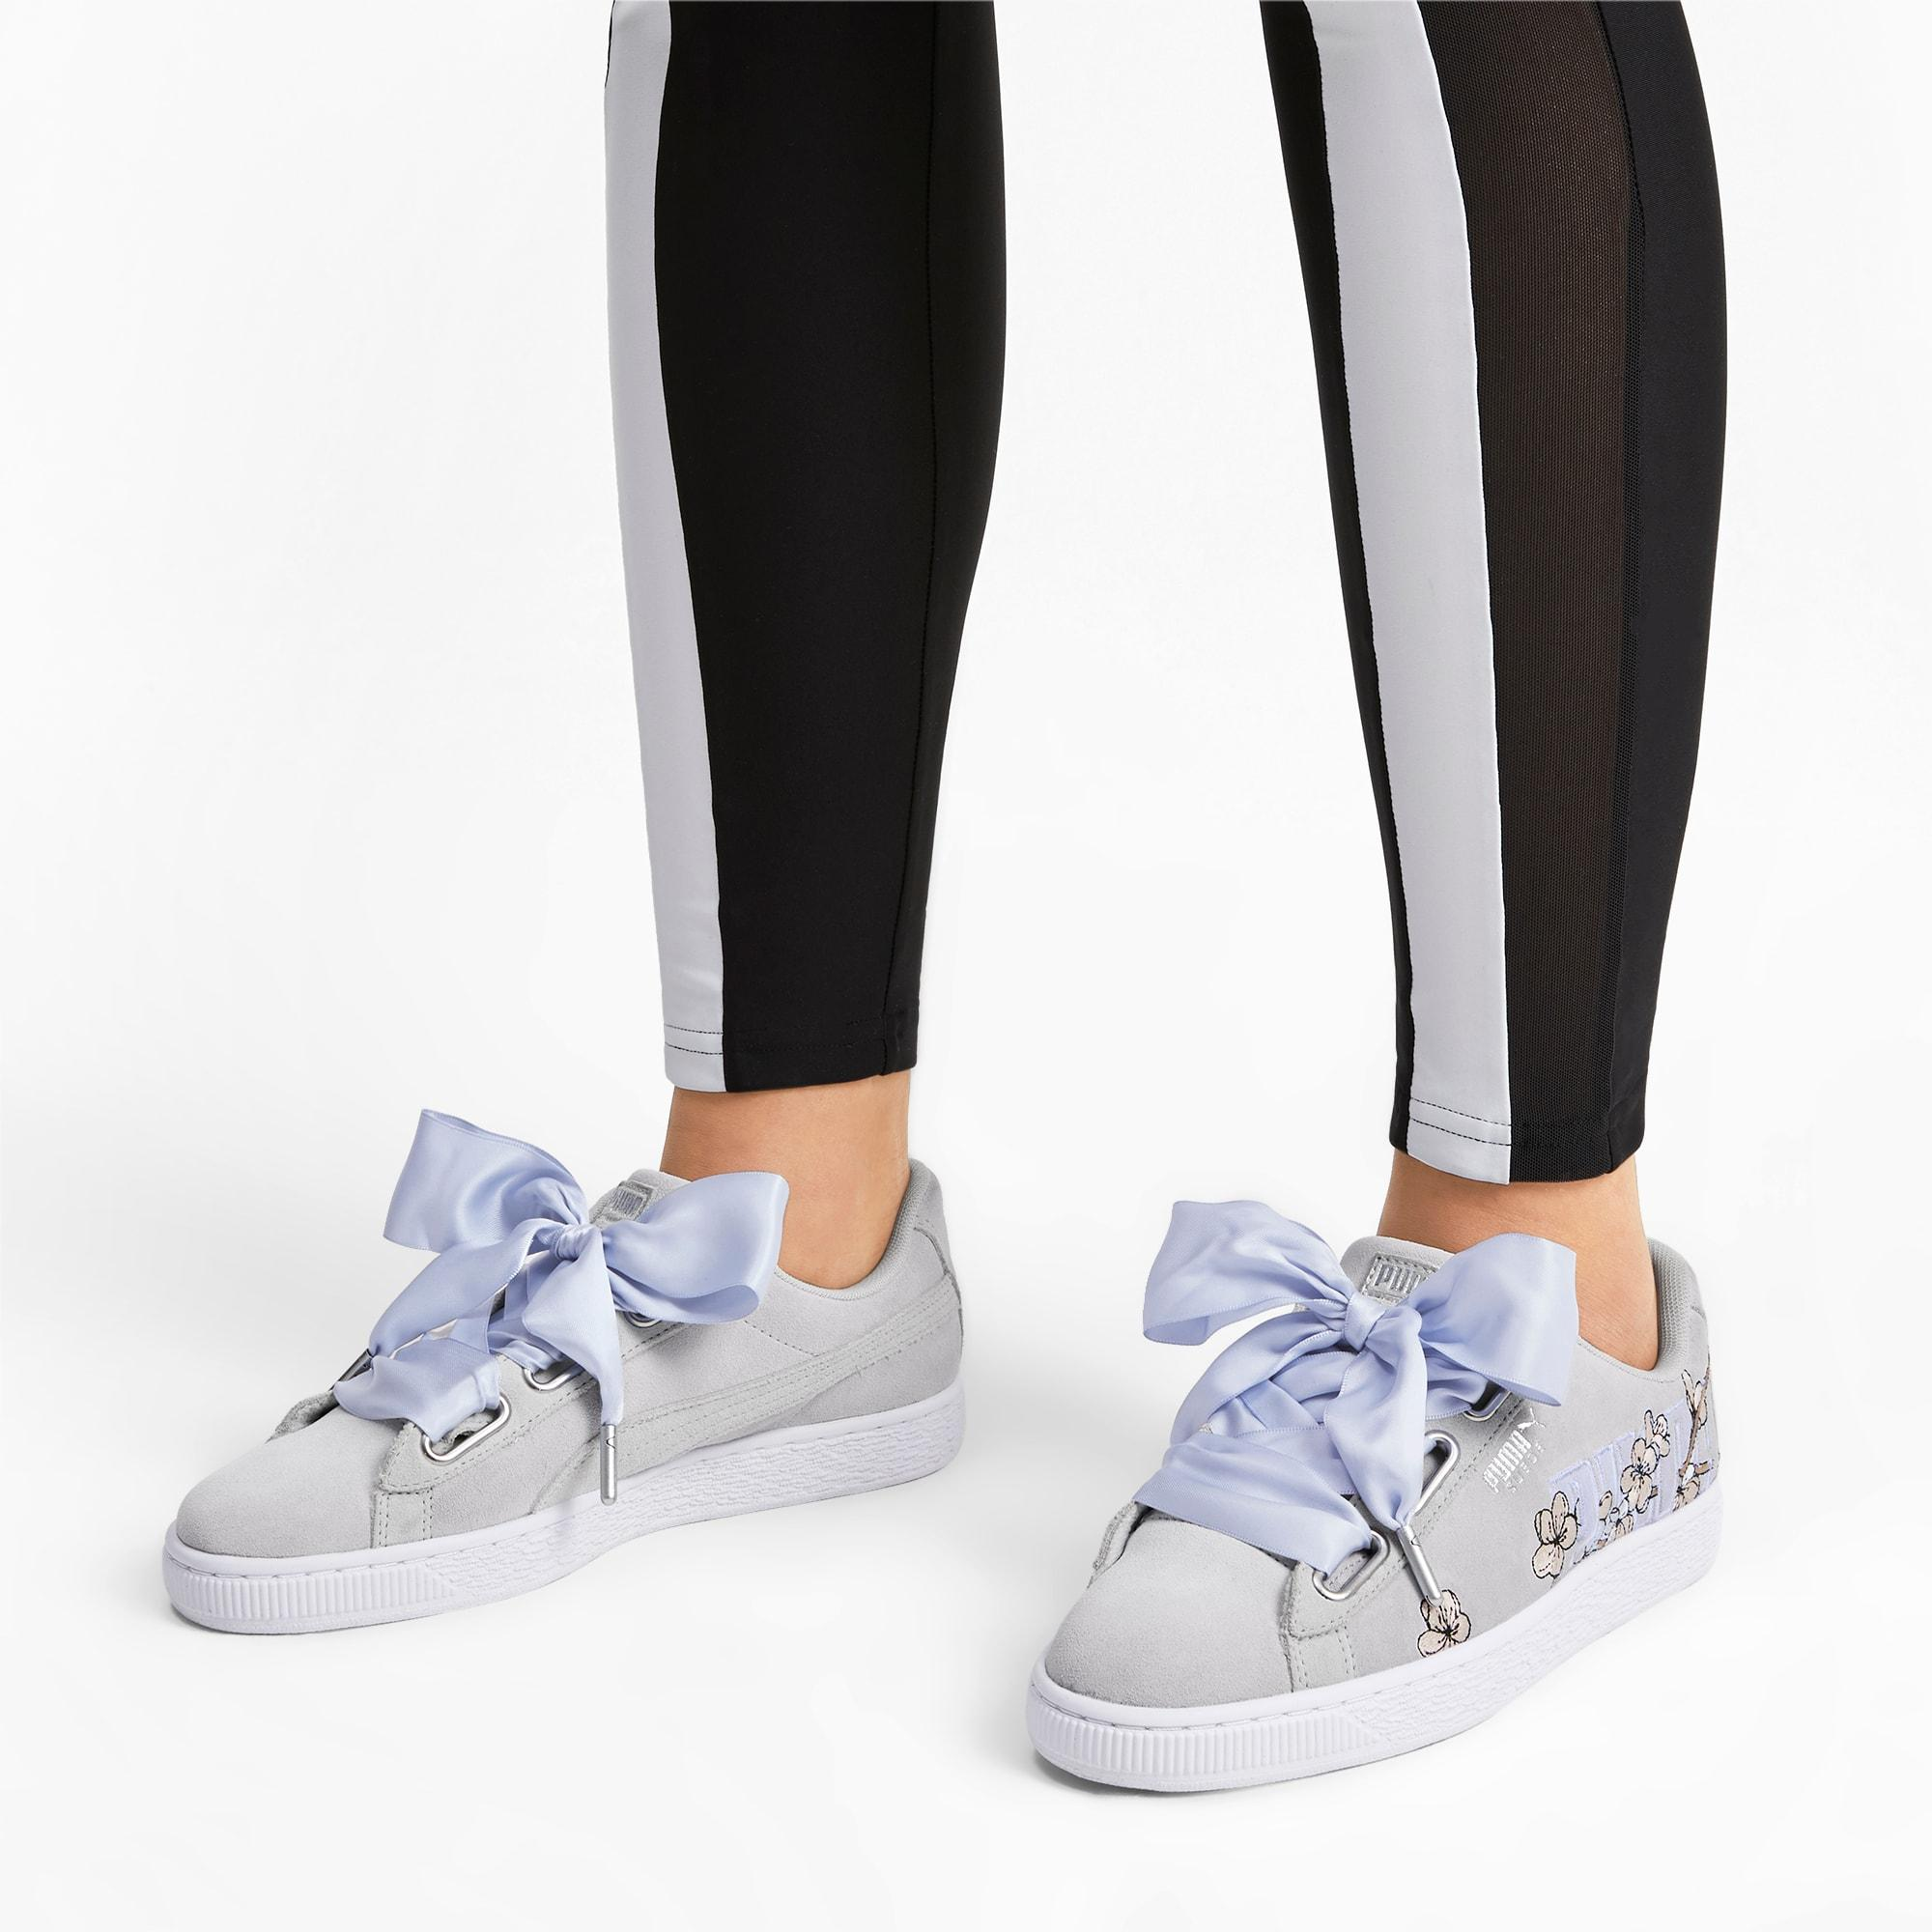 PUMA Suede Heart Floral Sneakers - Lyst